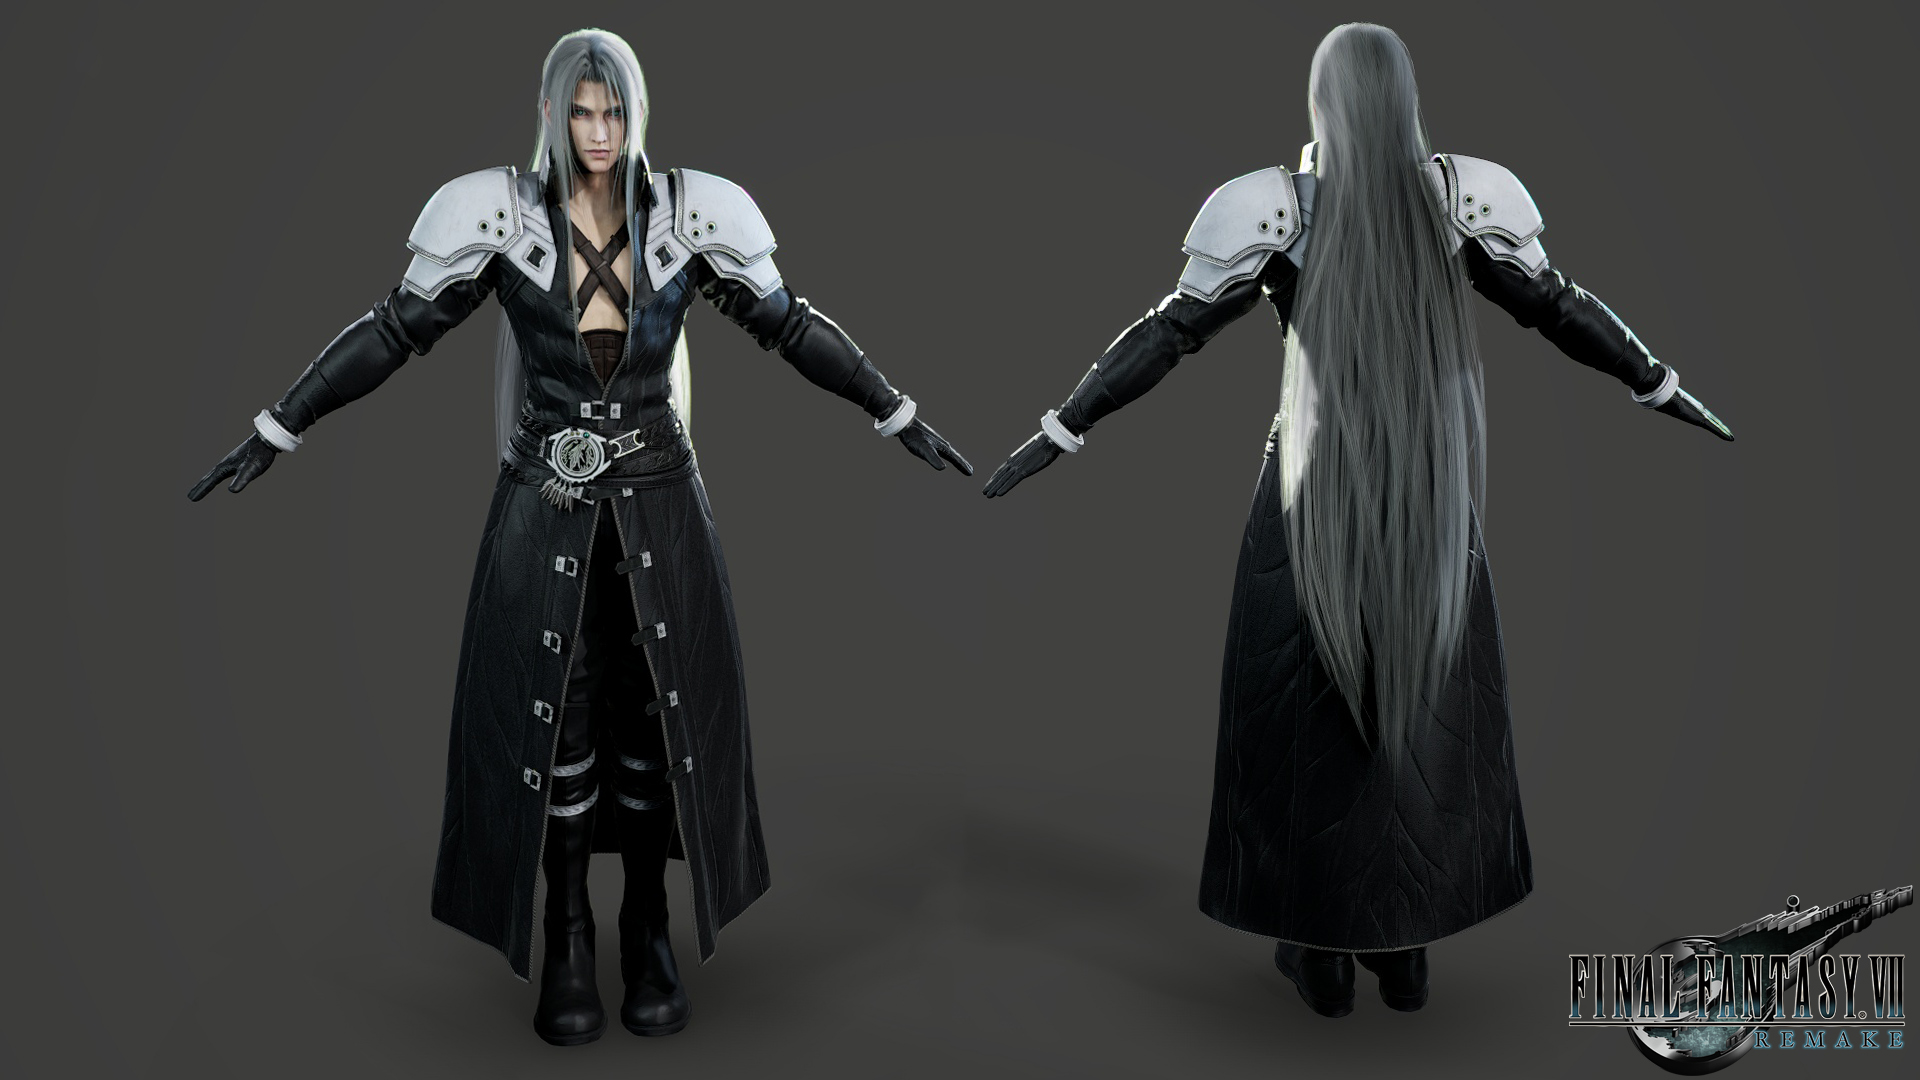 Final Fantasy Vii Remake Sephiroth By Predator0000 On Deviantart